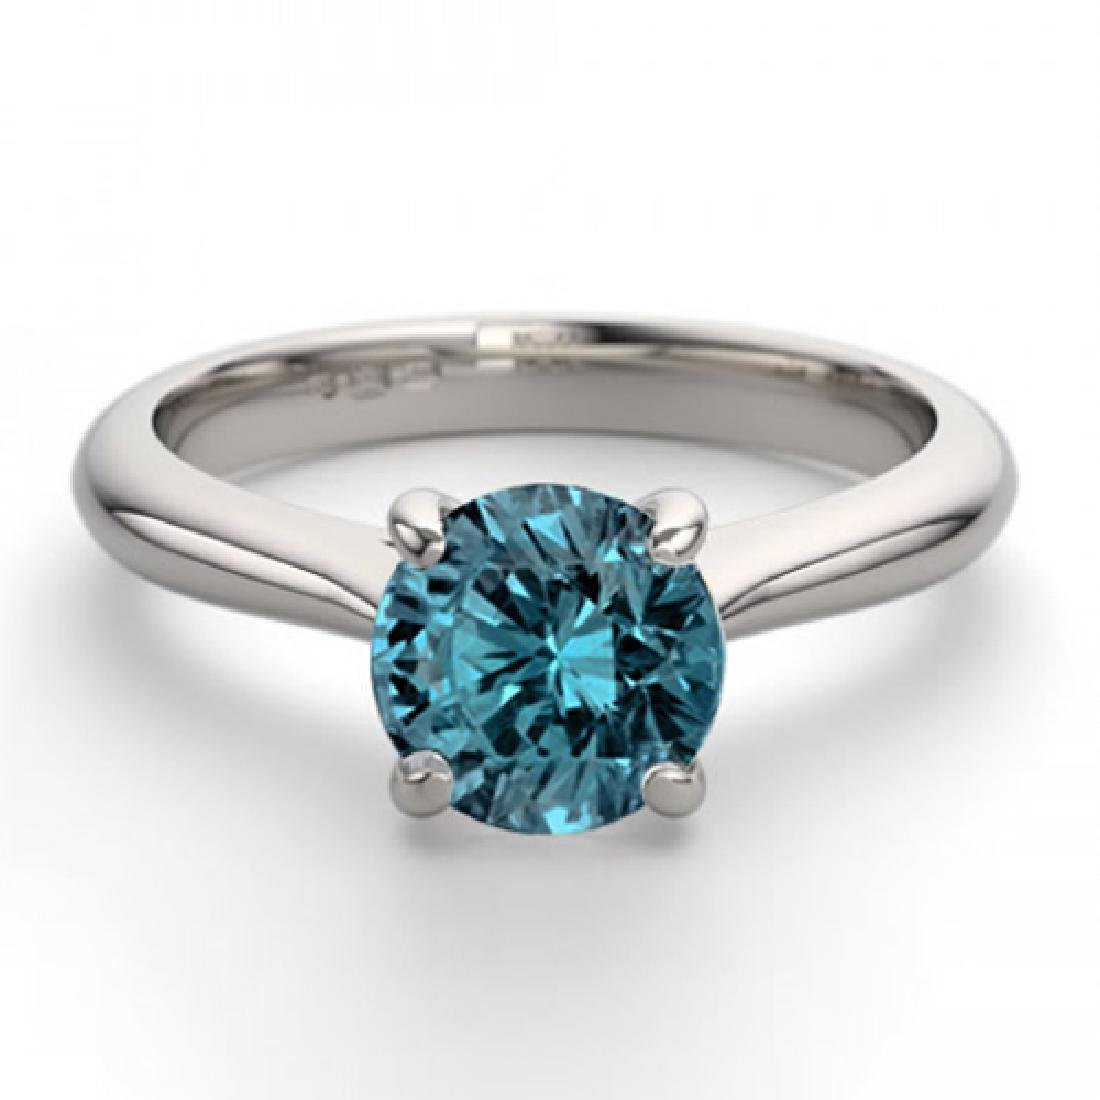 14K White Gold 0.91 ctw Blue Diamond Solitaire Ring -